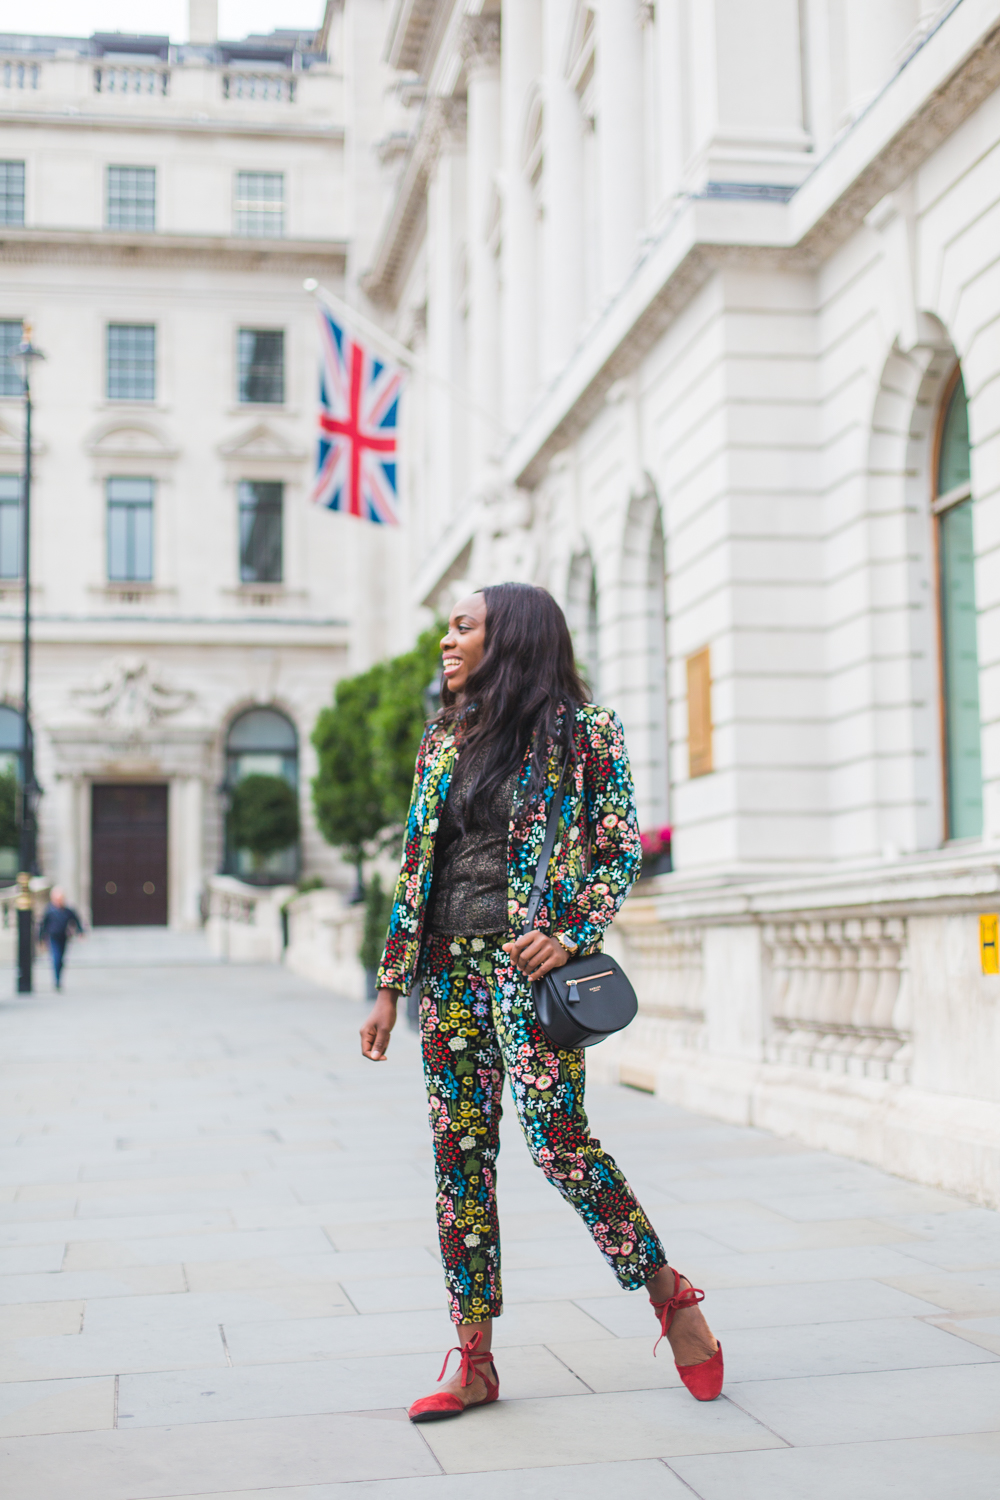 Meet the suit of AW17, the Boden forest print Velvet Emilia Blazer & Trousers